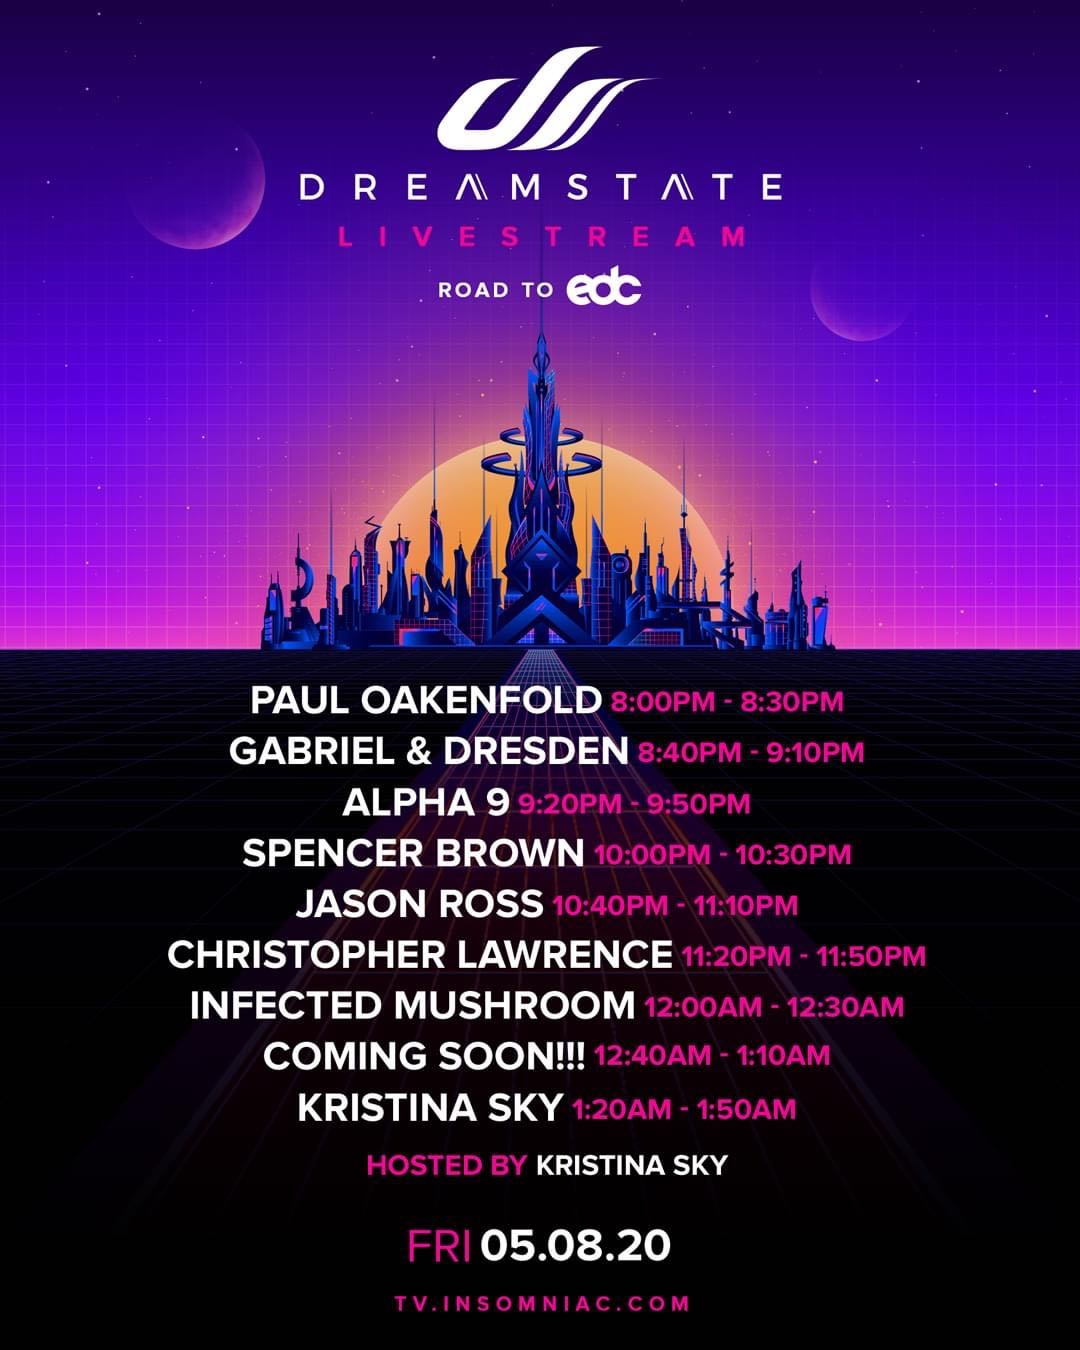 Dreamstate Livestream Schedule